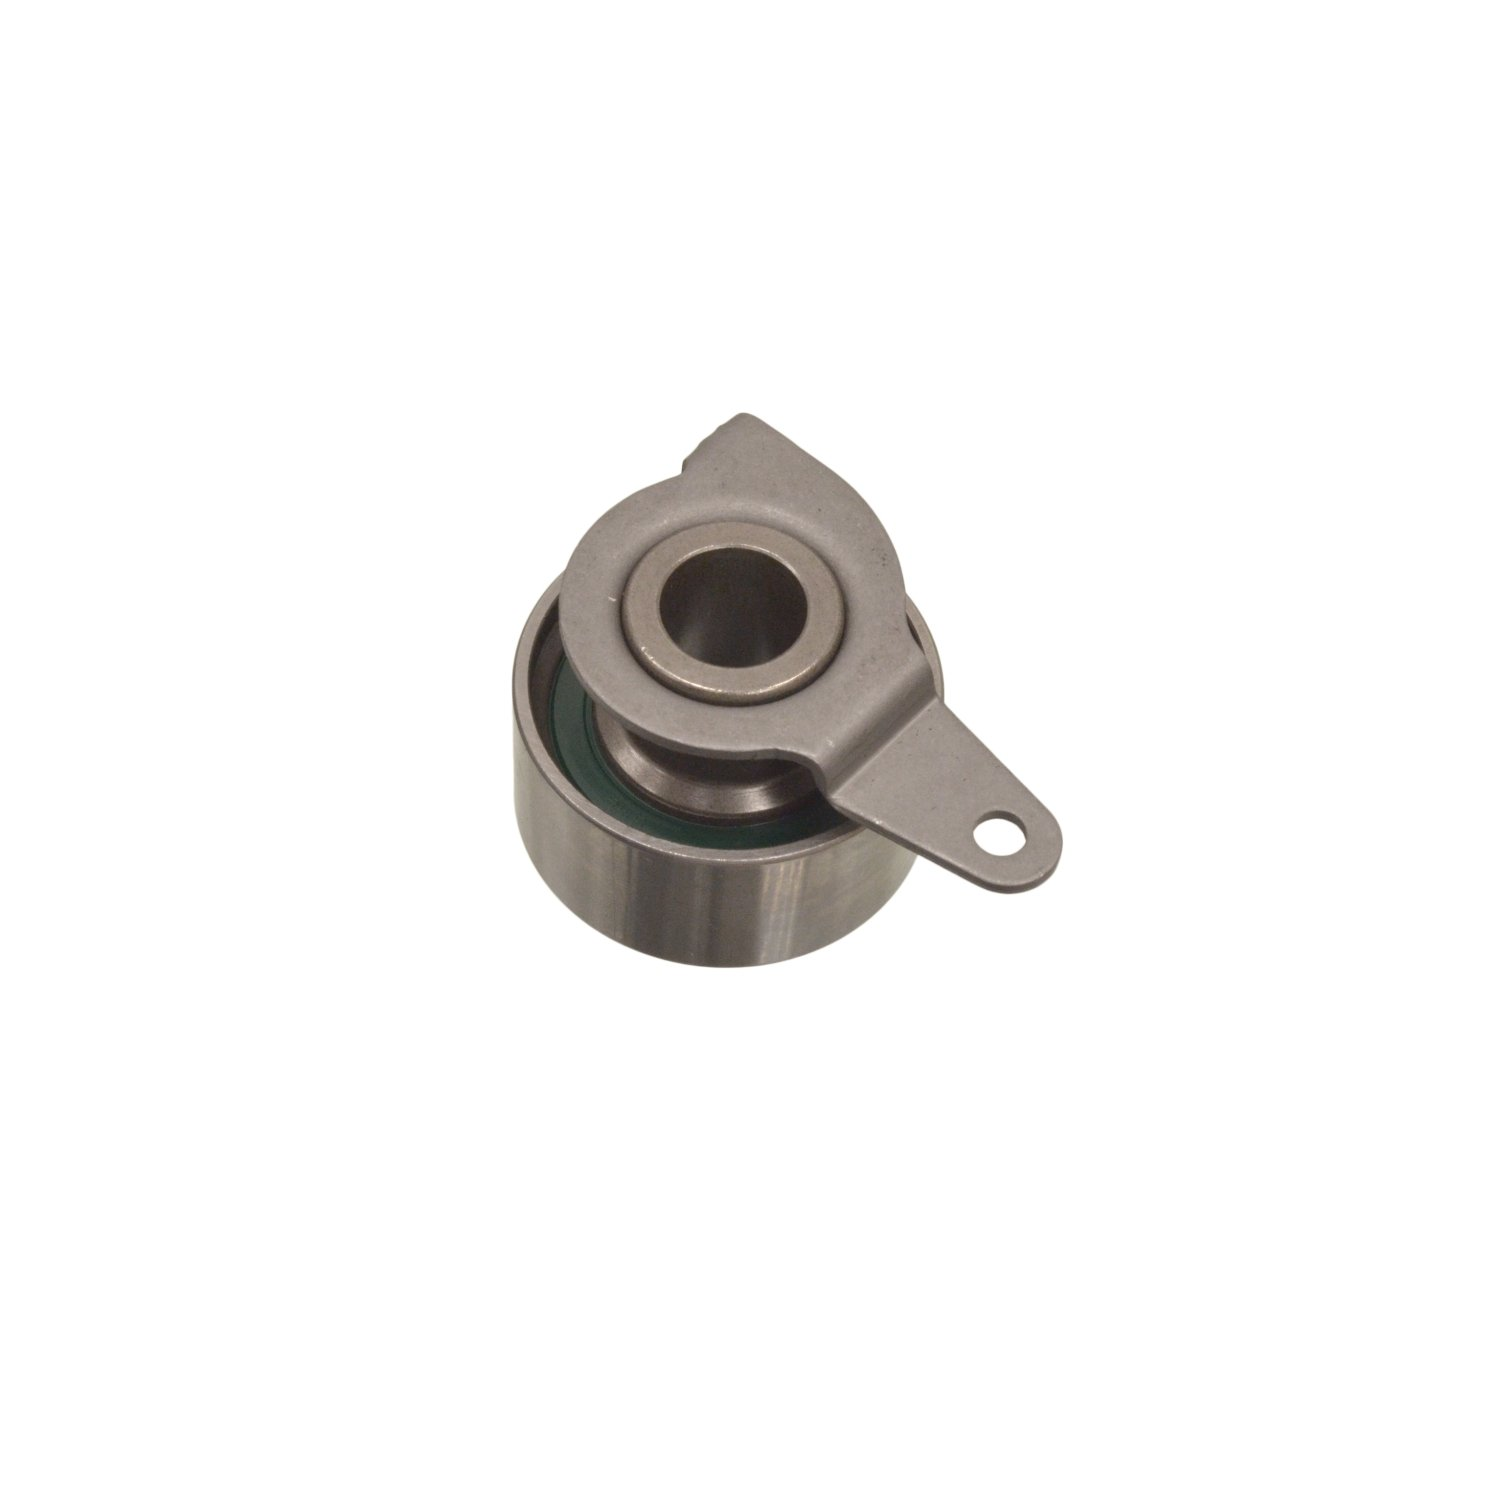 Blue Print ADH27609 tensioner pulley for Timing Belt - Pack of 1